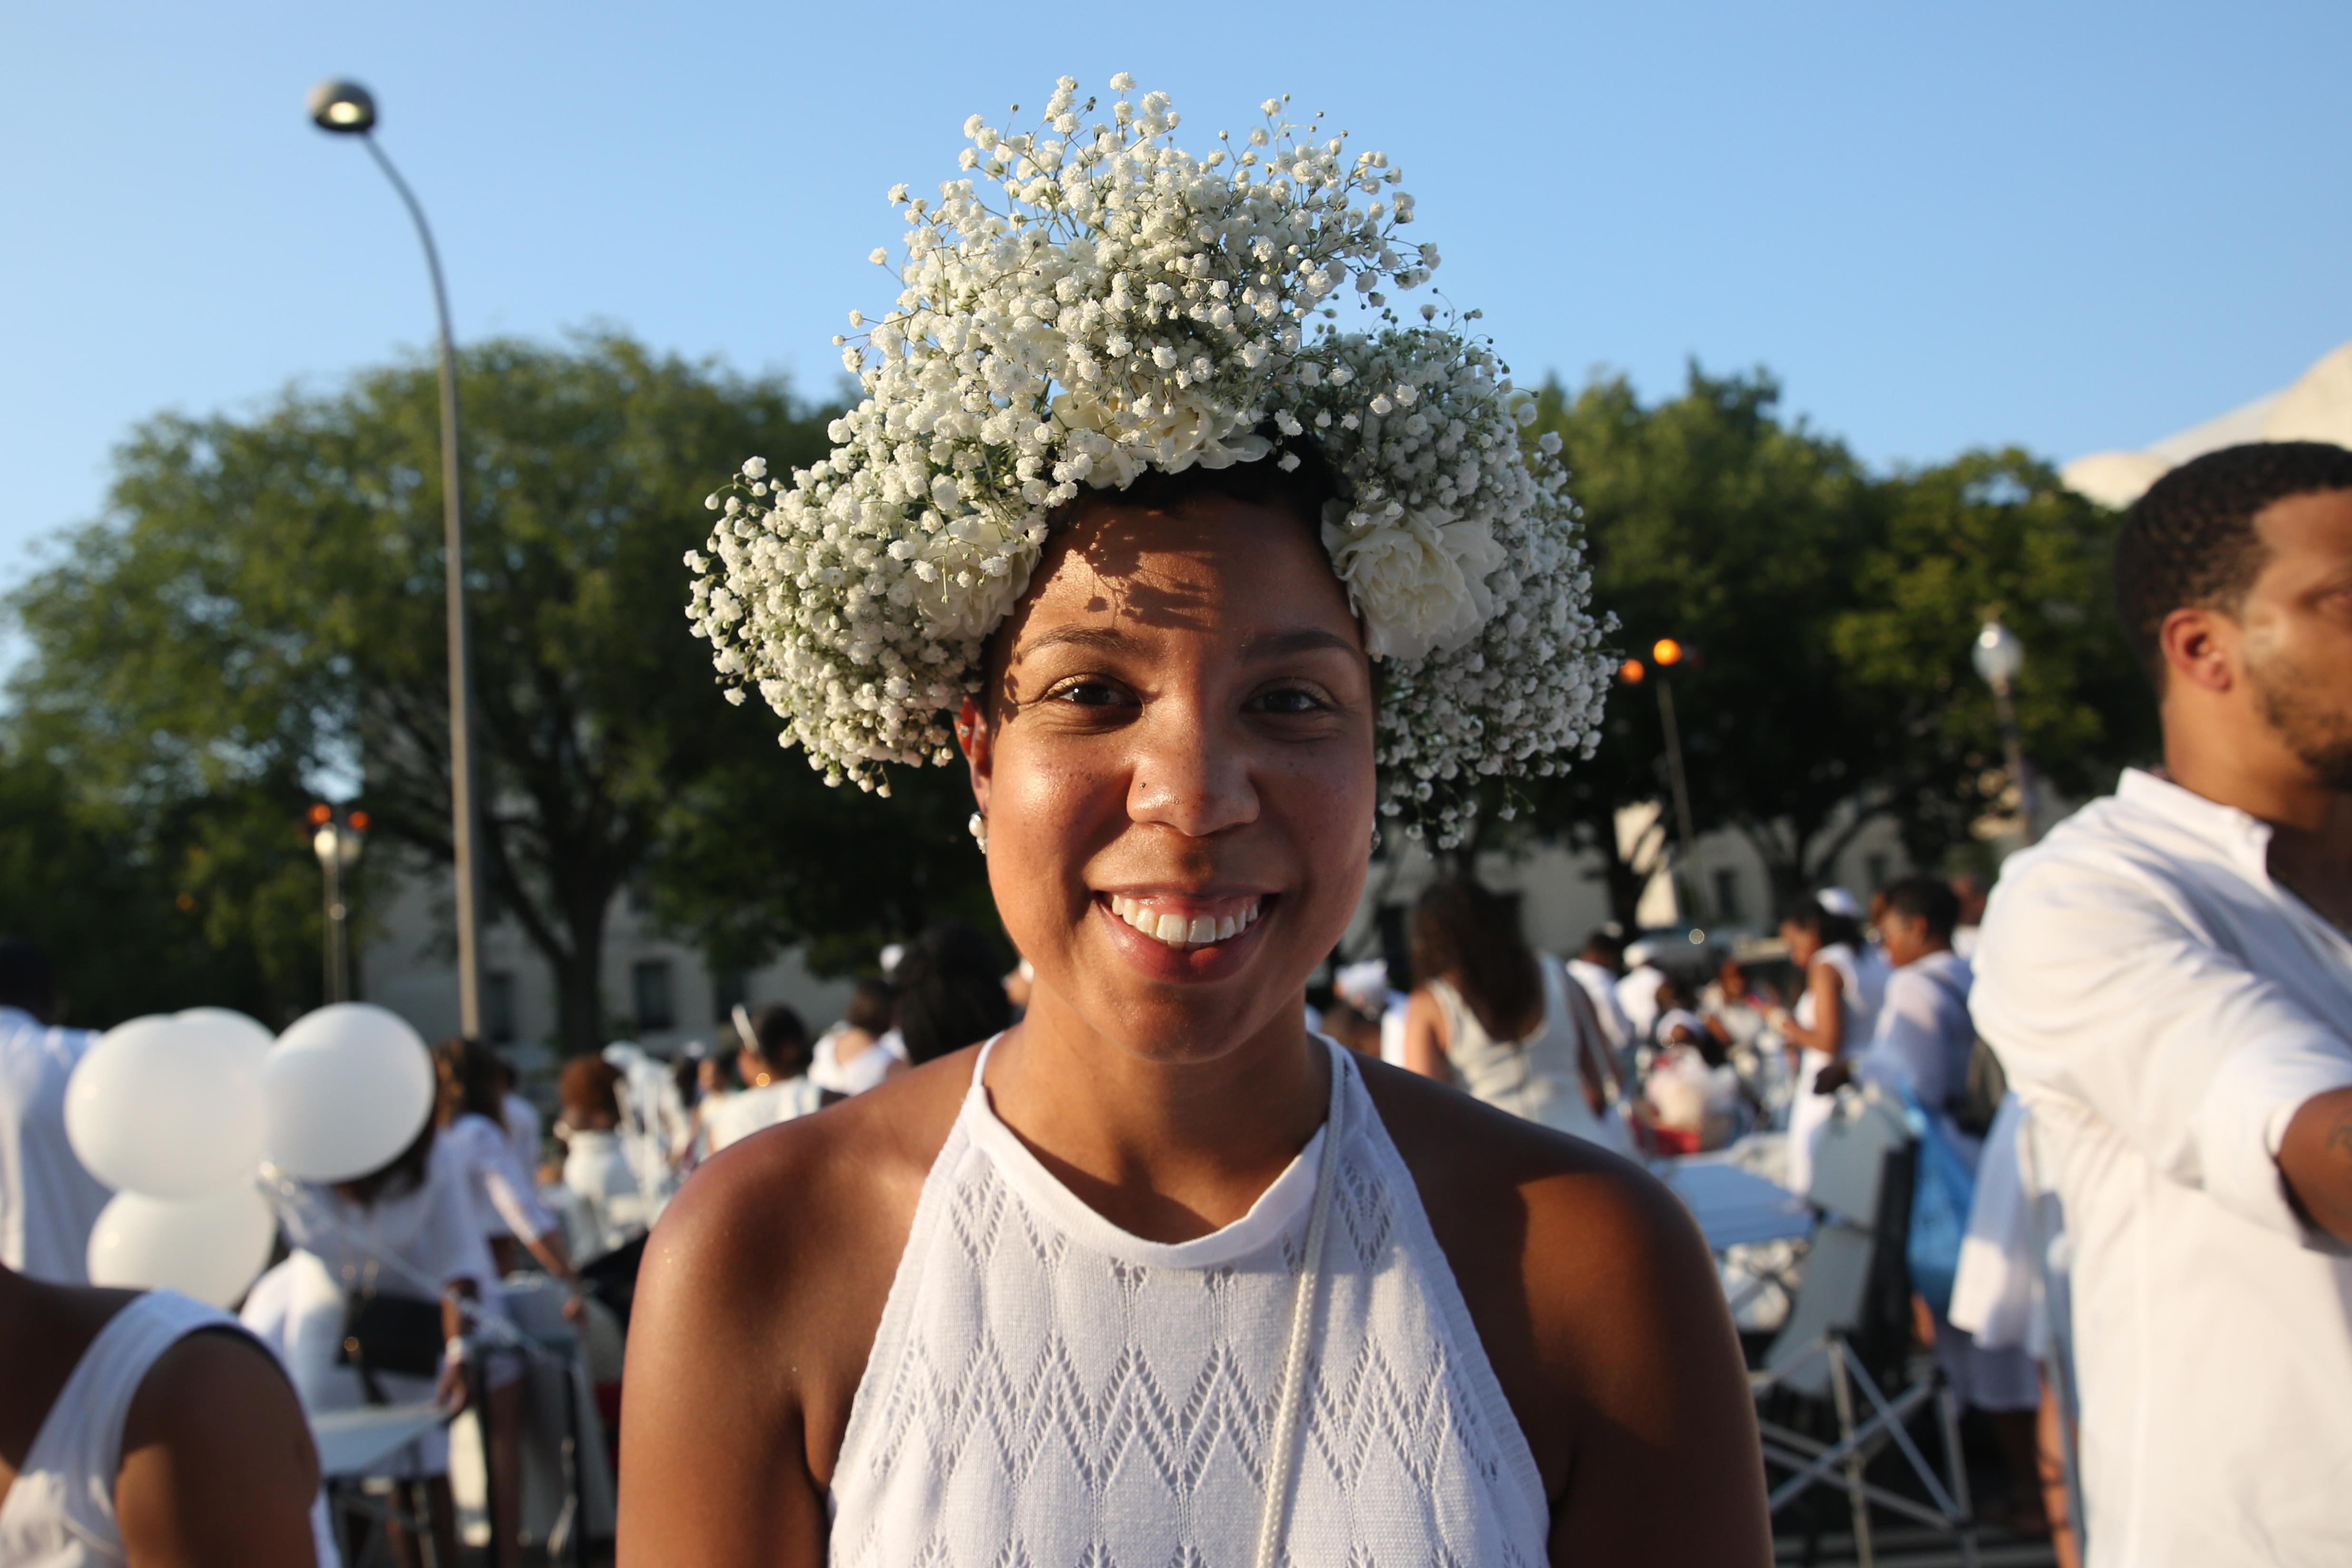 Nicole Foster's flower crown was so soft and romantic. (Amanda Andrade-Rhoades/DC Refined)